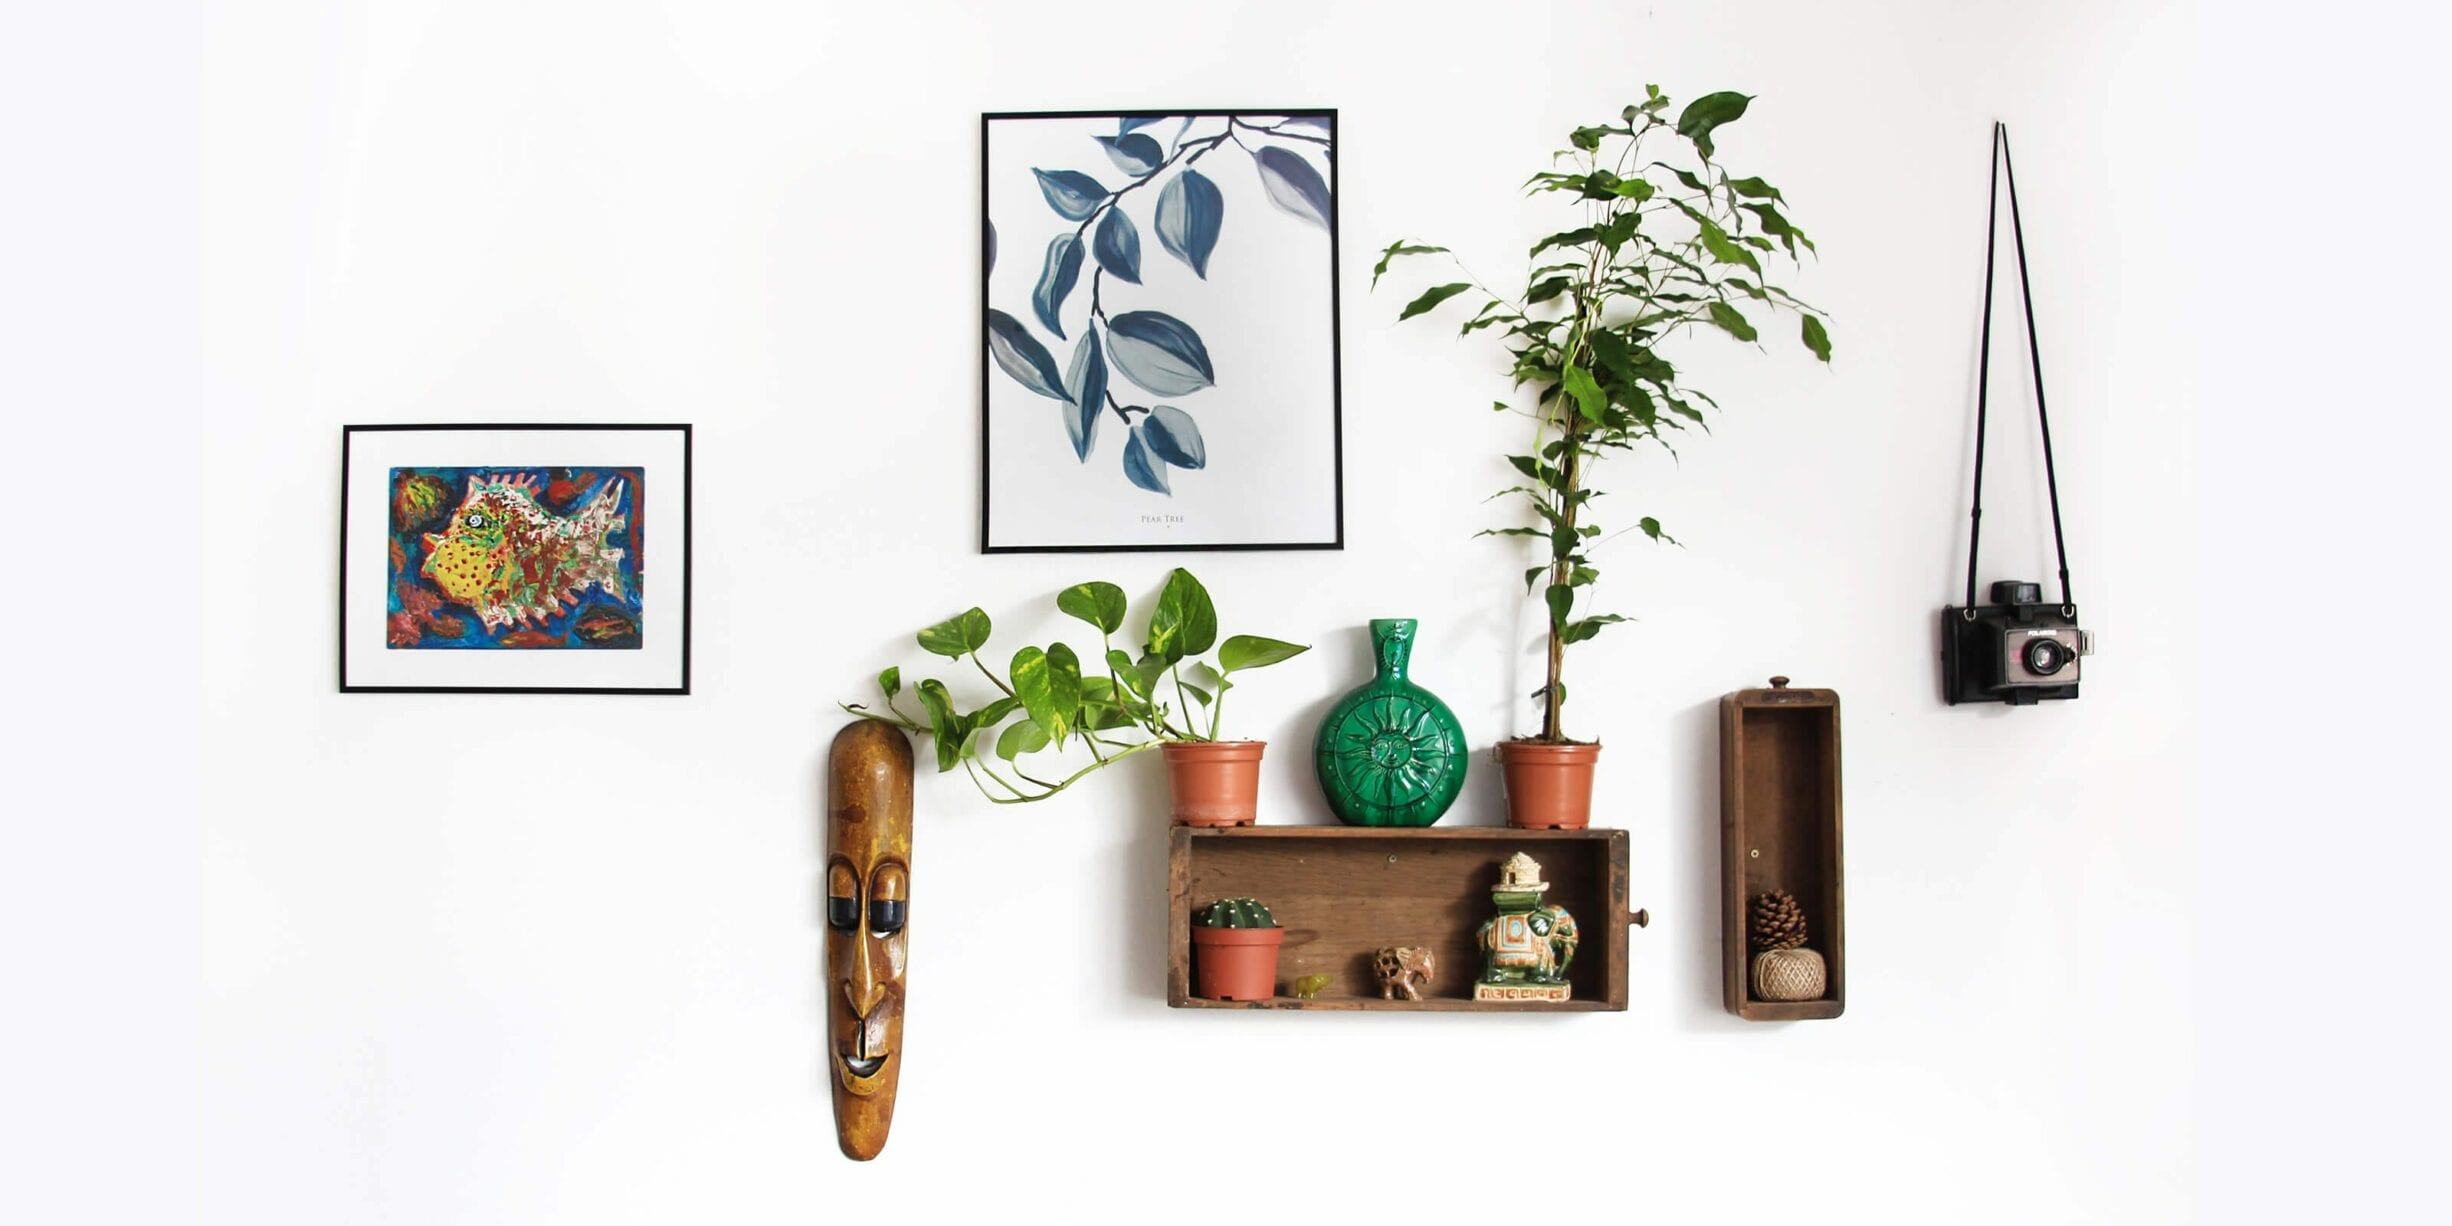 shelves mounted on wall, paintings, house plants